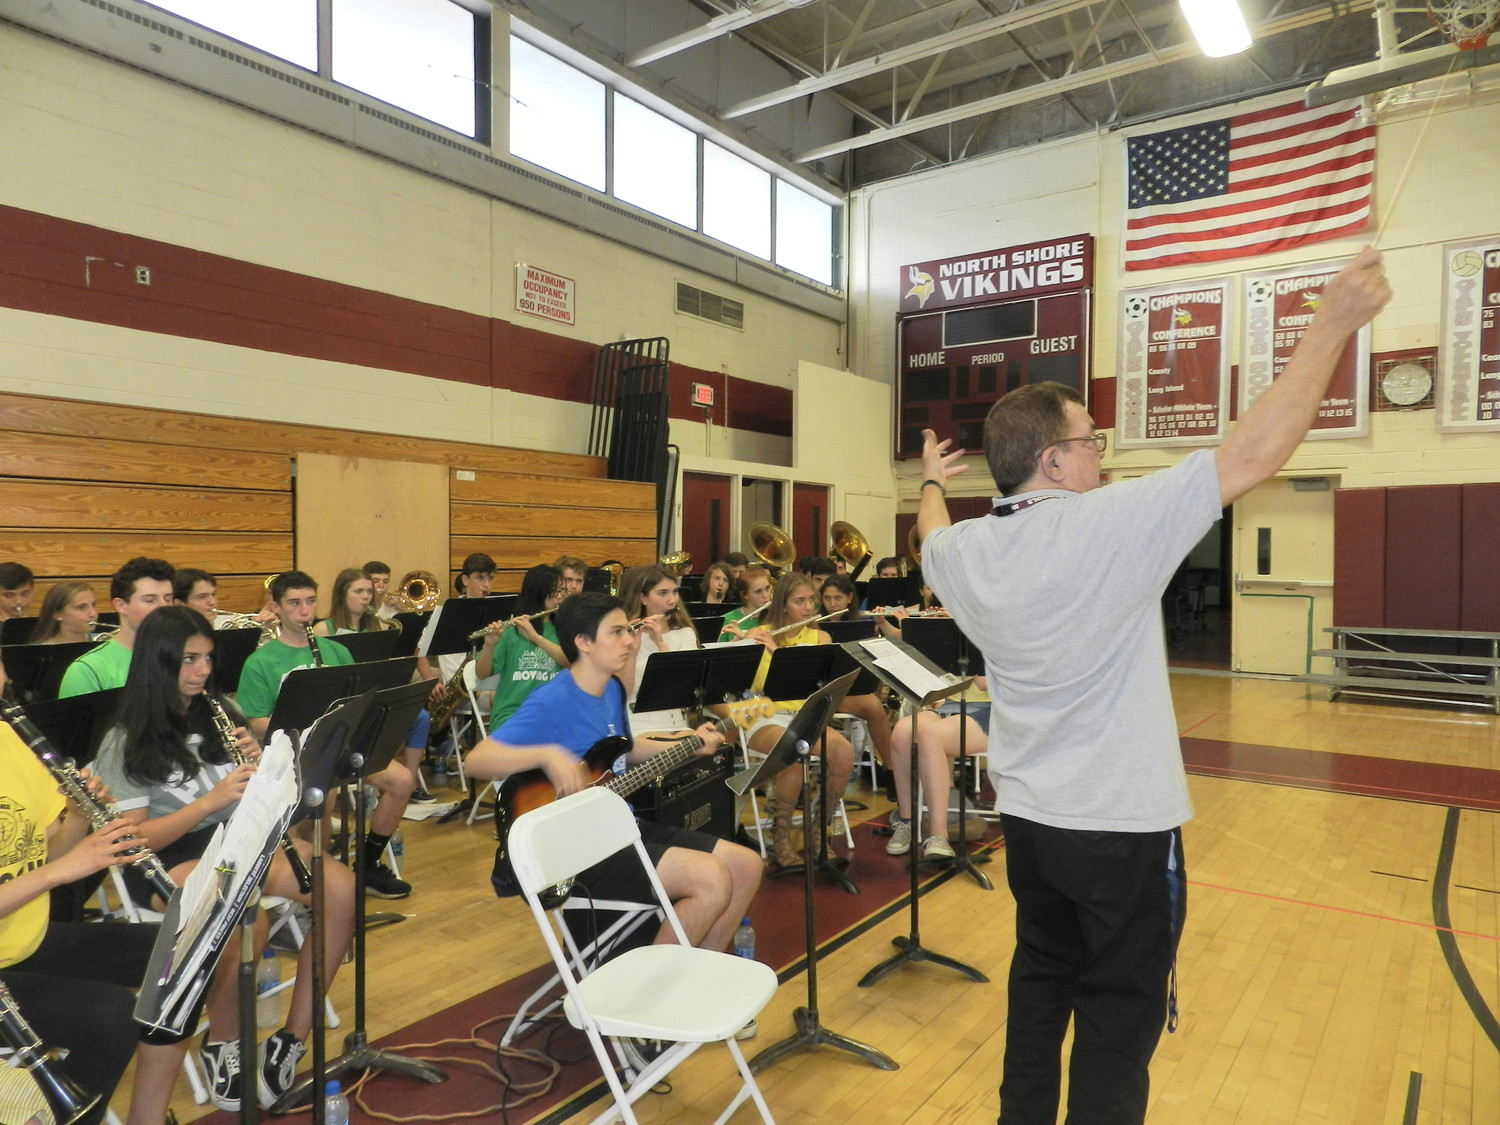 Conductor Dave Soto led the North Shore High School wind symphony as they played a processional march song at the Moving Up ceremony.